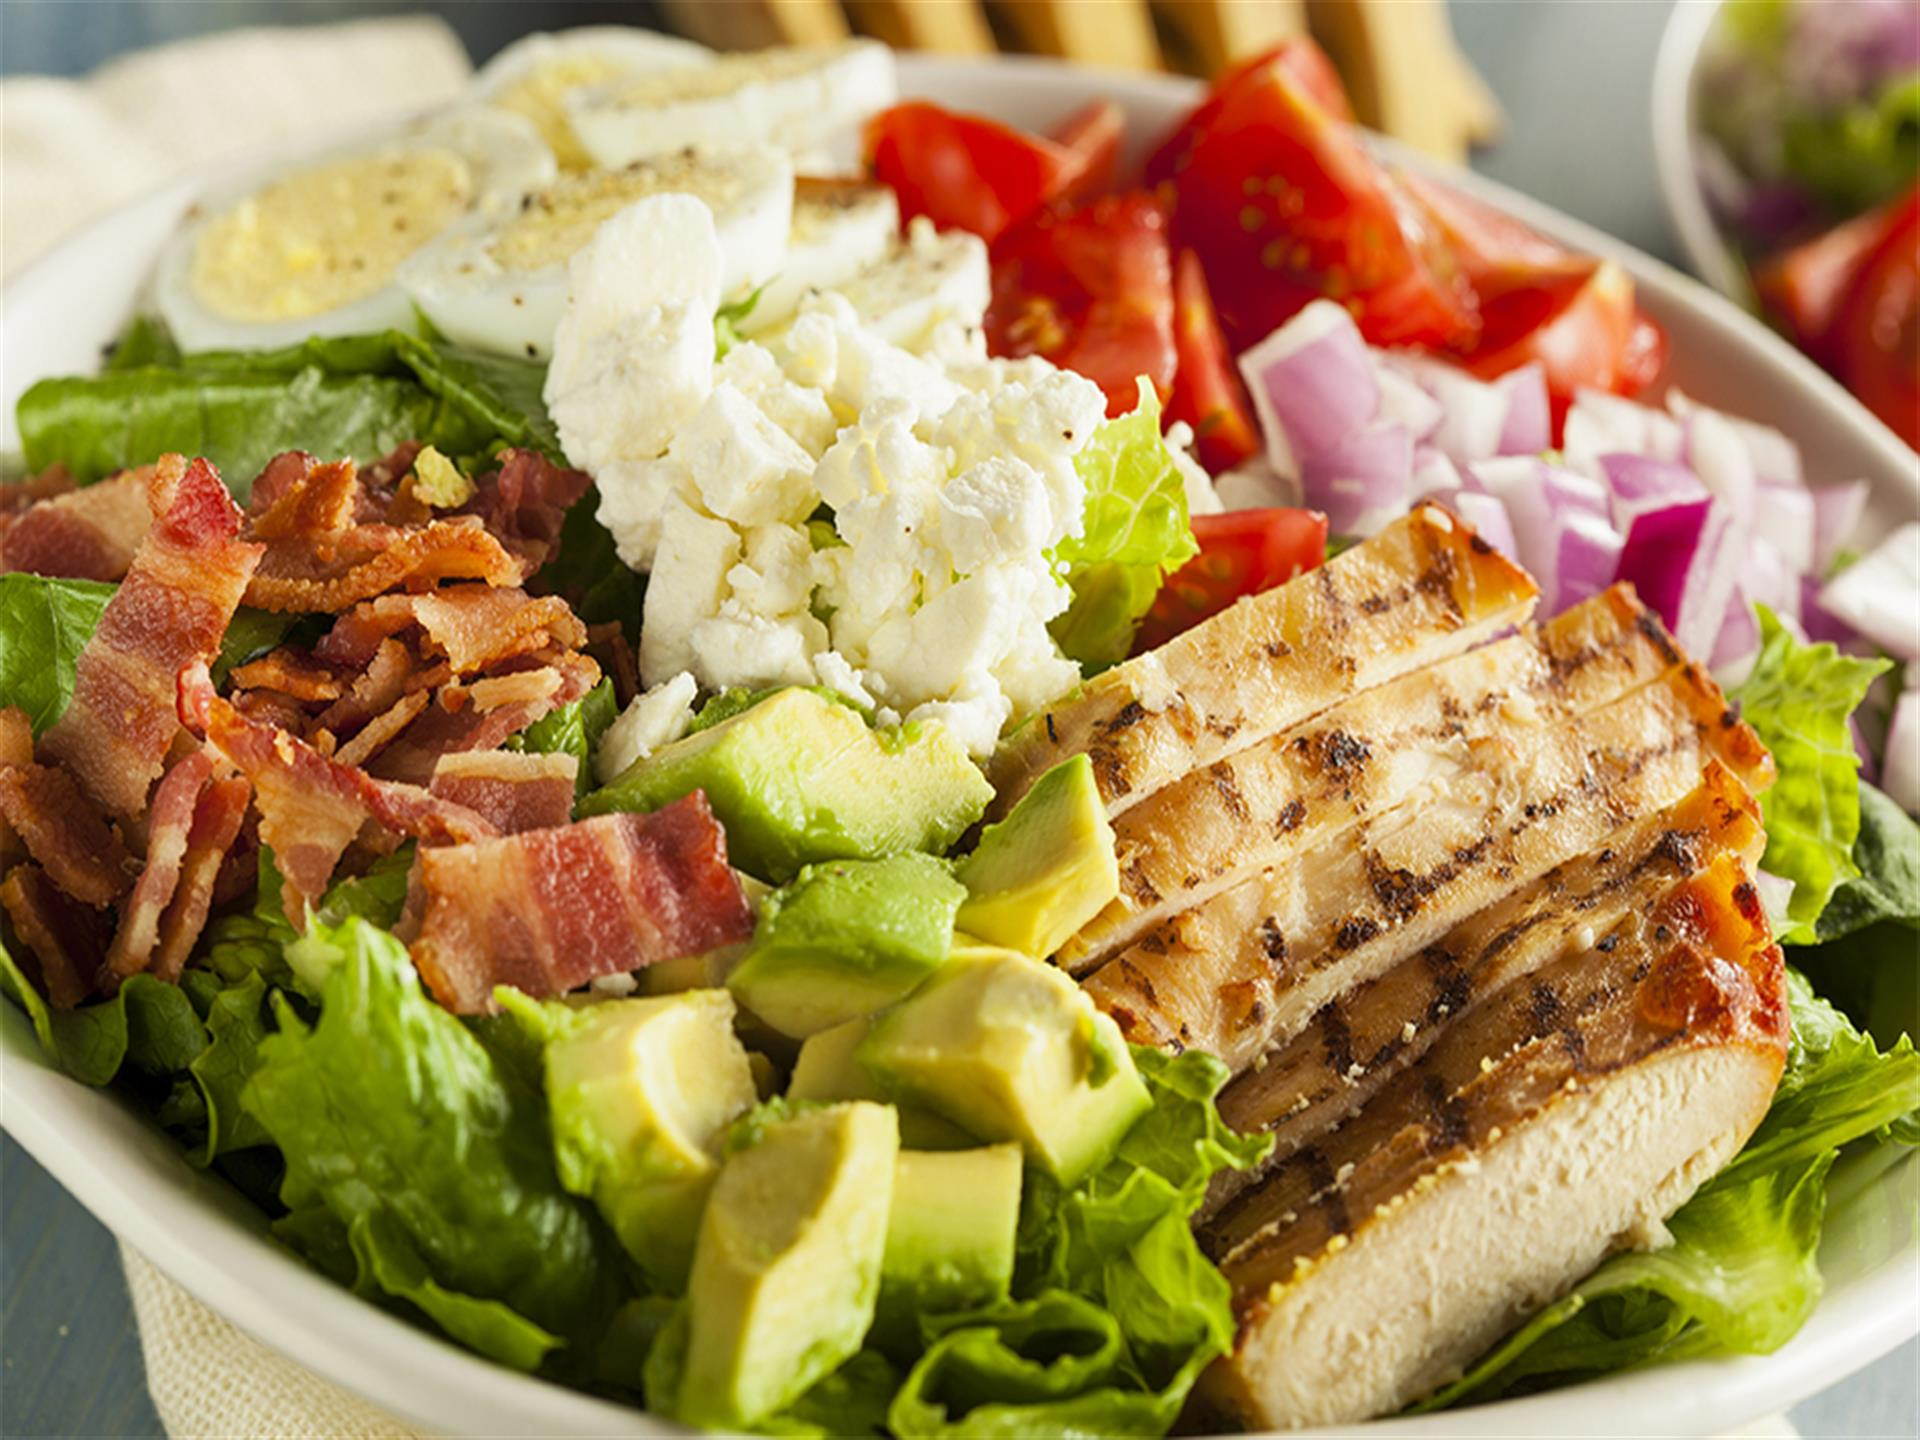 Cobb salad with grilled chicken, red onion, tomatoes, bacon, hard-boiled egg, feta cheese, and avocado over romaine lettuce